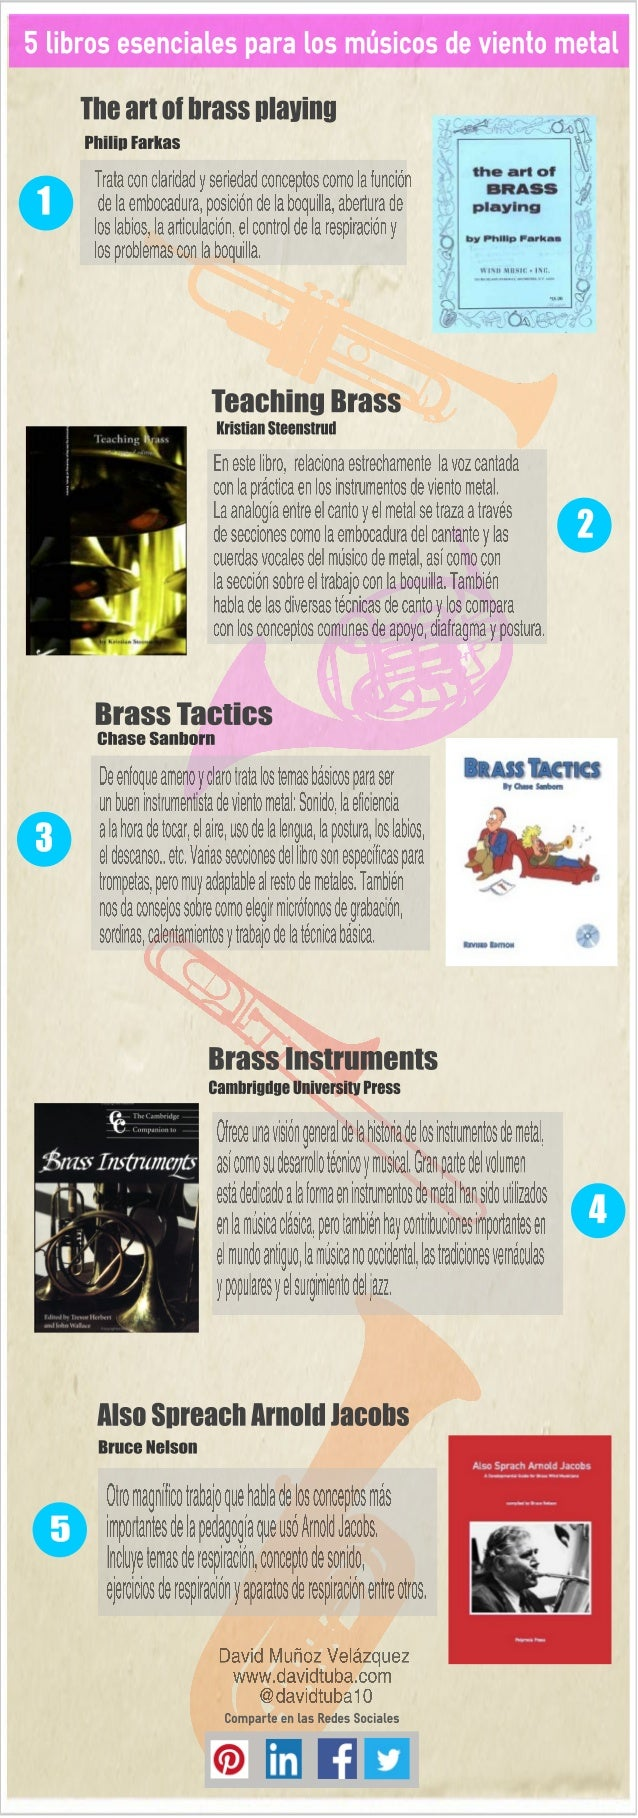 "5 libros esenciales para los músicos de viento metal     The art of hrass nlaving  Philin Farlias  _ p' - - ""  the art of ..."